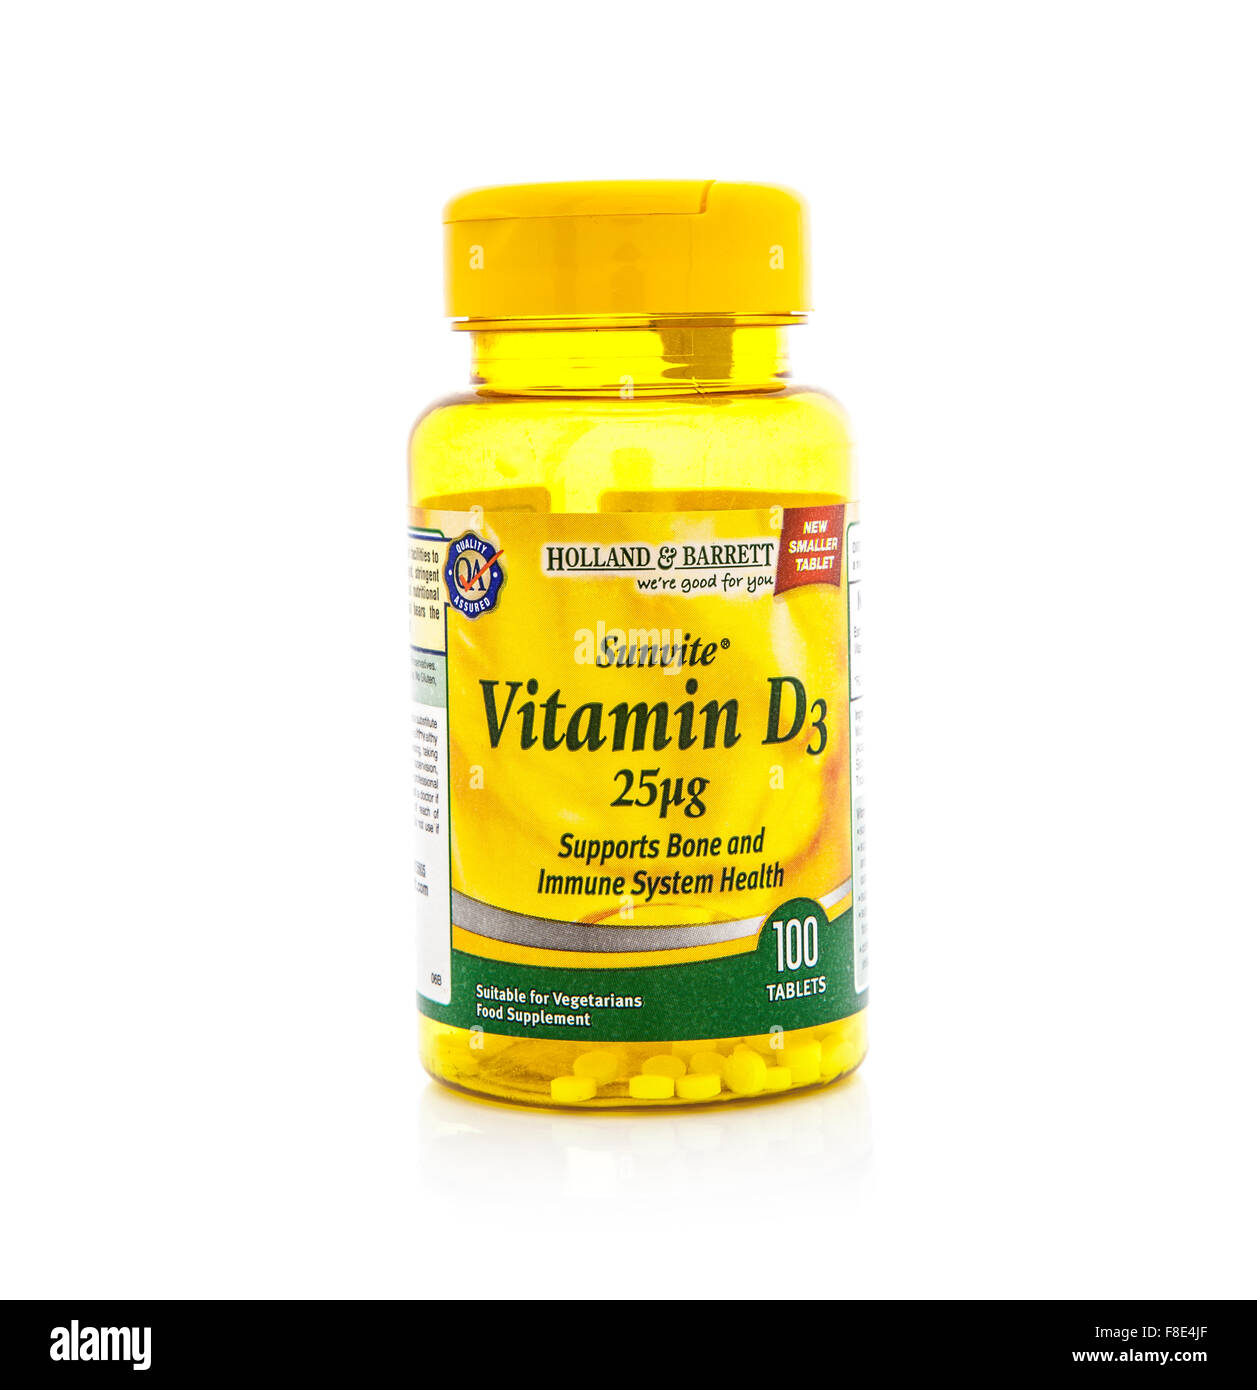 Vitamin D container on a white background - Stock Image